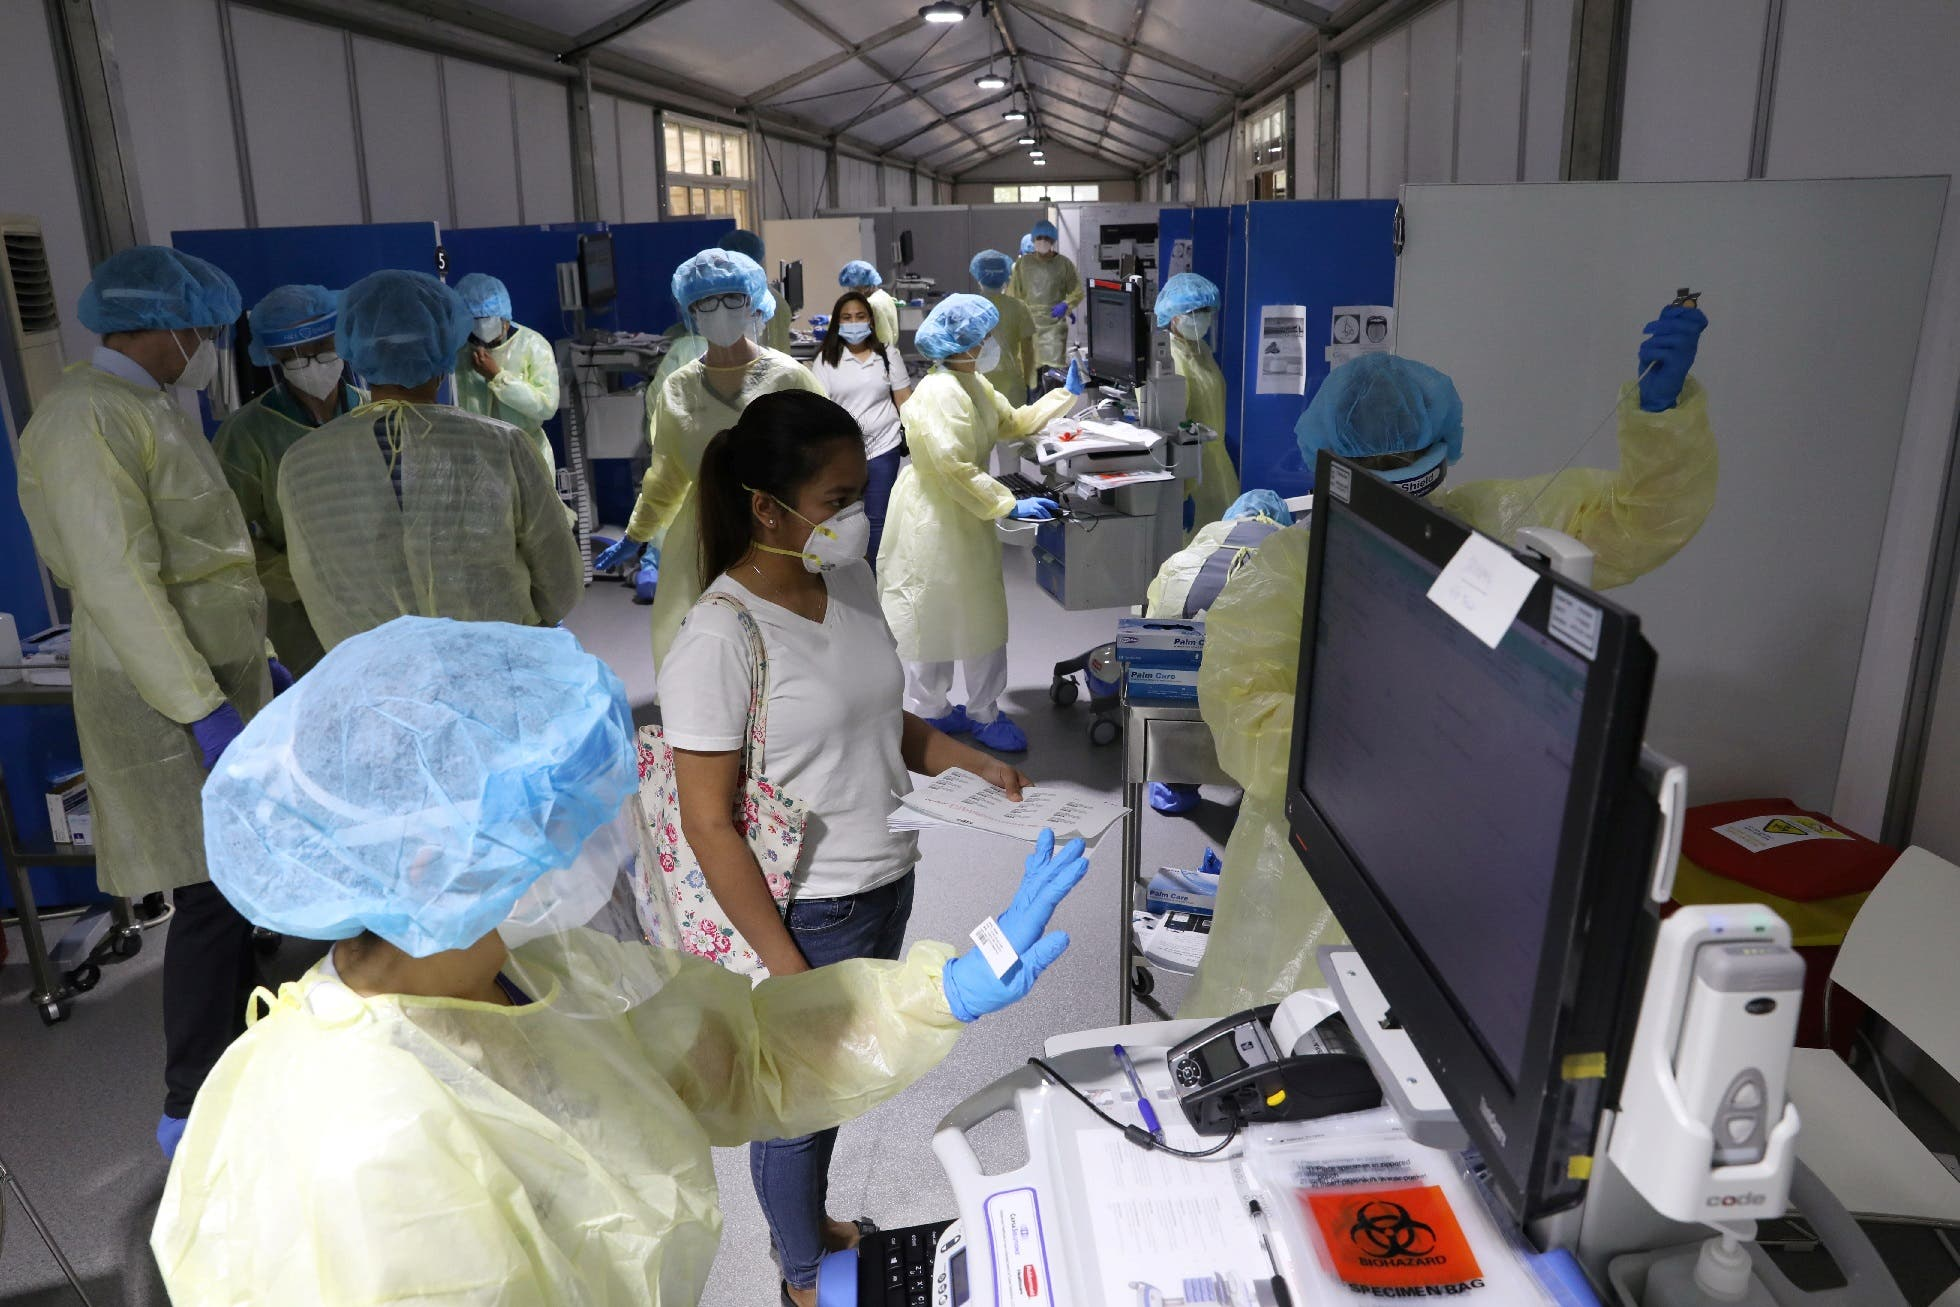 A woman waits to be tested by medical staff wearing protective equipment, amid the coronavirus outbreak, at a hospital in Abu Dhabi, UAE, April 20, 2020. (Reuters)